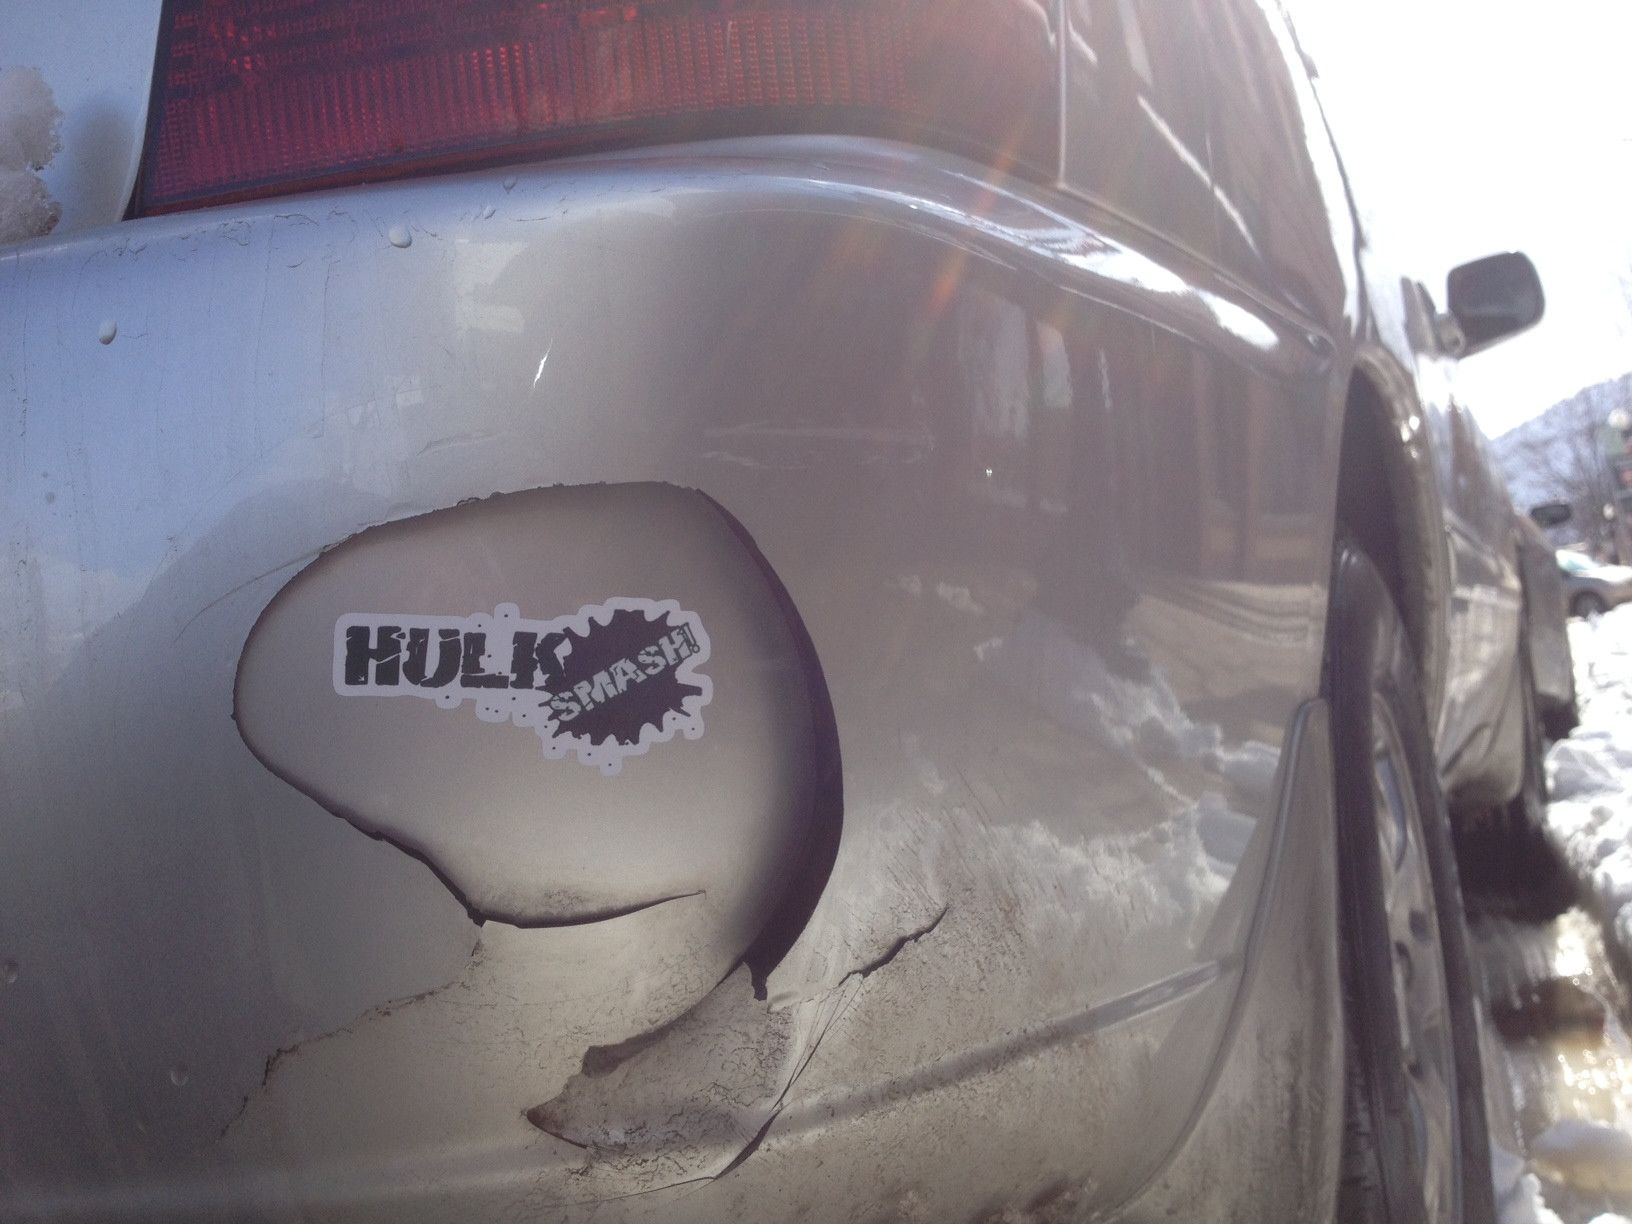 My Kind Of Temporary Bumper Band Aid Bumper Stickers Bumpers Hulk Smash [ 1224 x 1632 Pixel ]